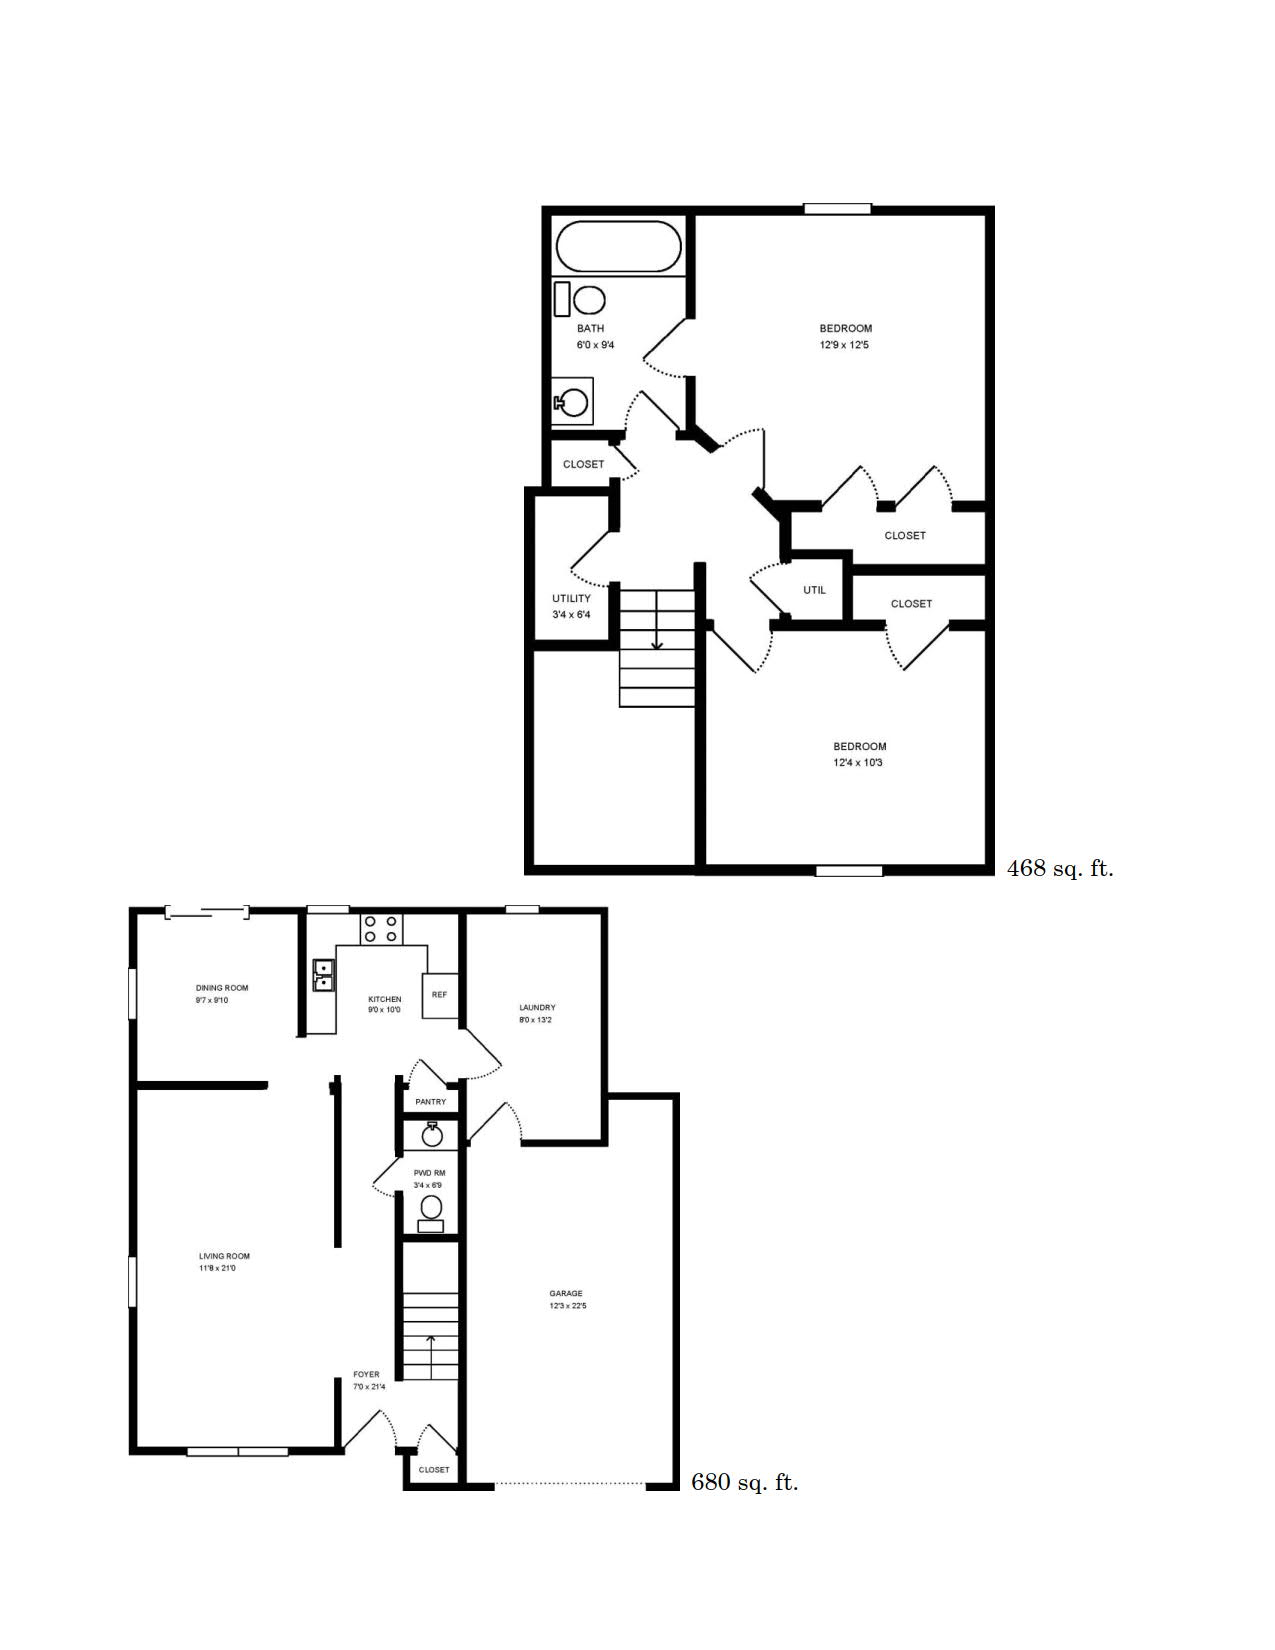 Oakwood Homes Floor Plans together with Chesapeake Floor Plan in addition 2 Bedroom Loft Floor Plans moreover 123356477267295258 as well 2 Bedroom Luxury Apartment Floor Plans. on greensboro house plans